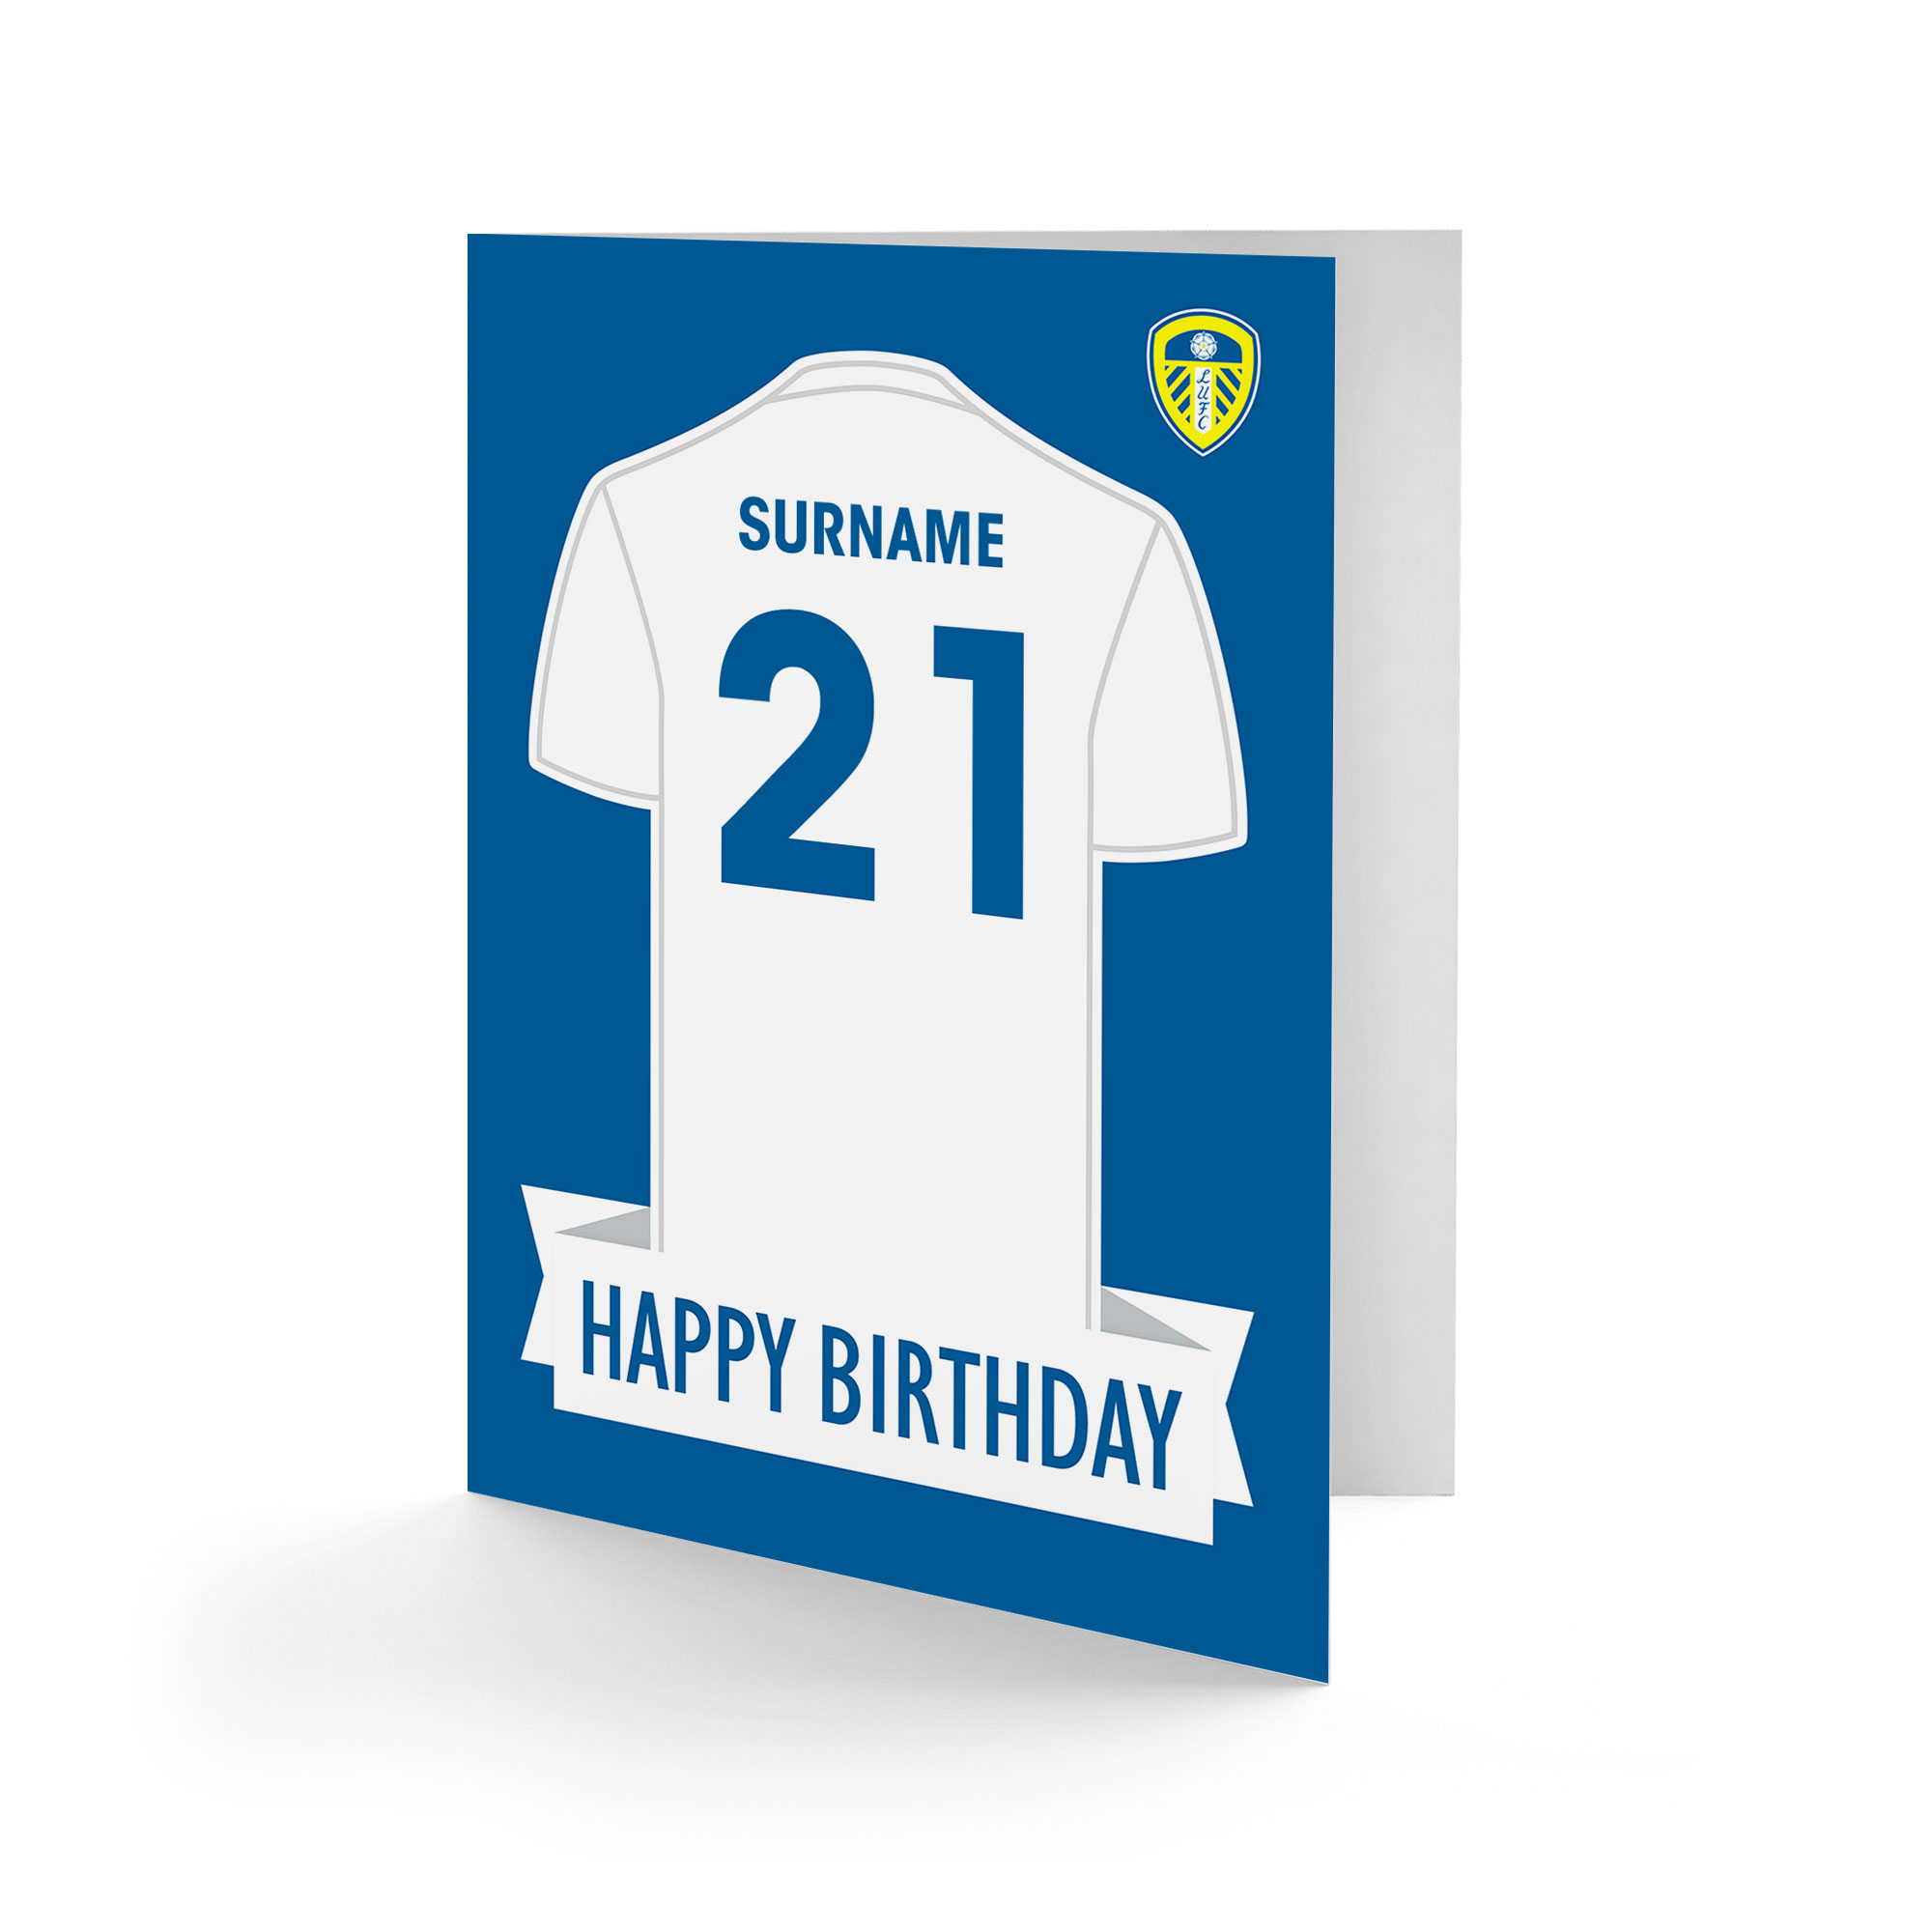 Personalised Leeds United FC Cards